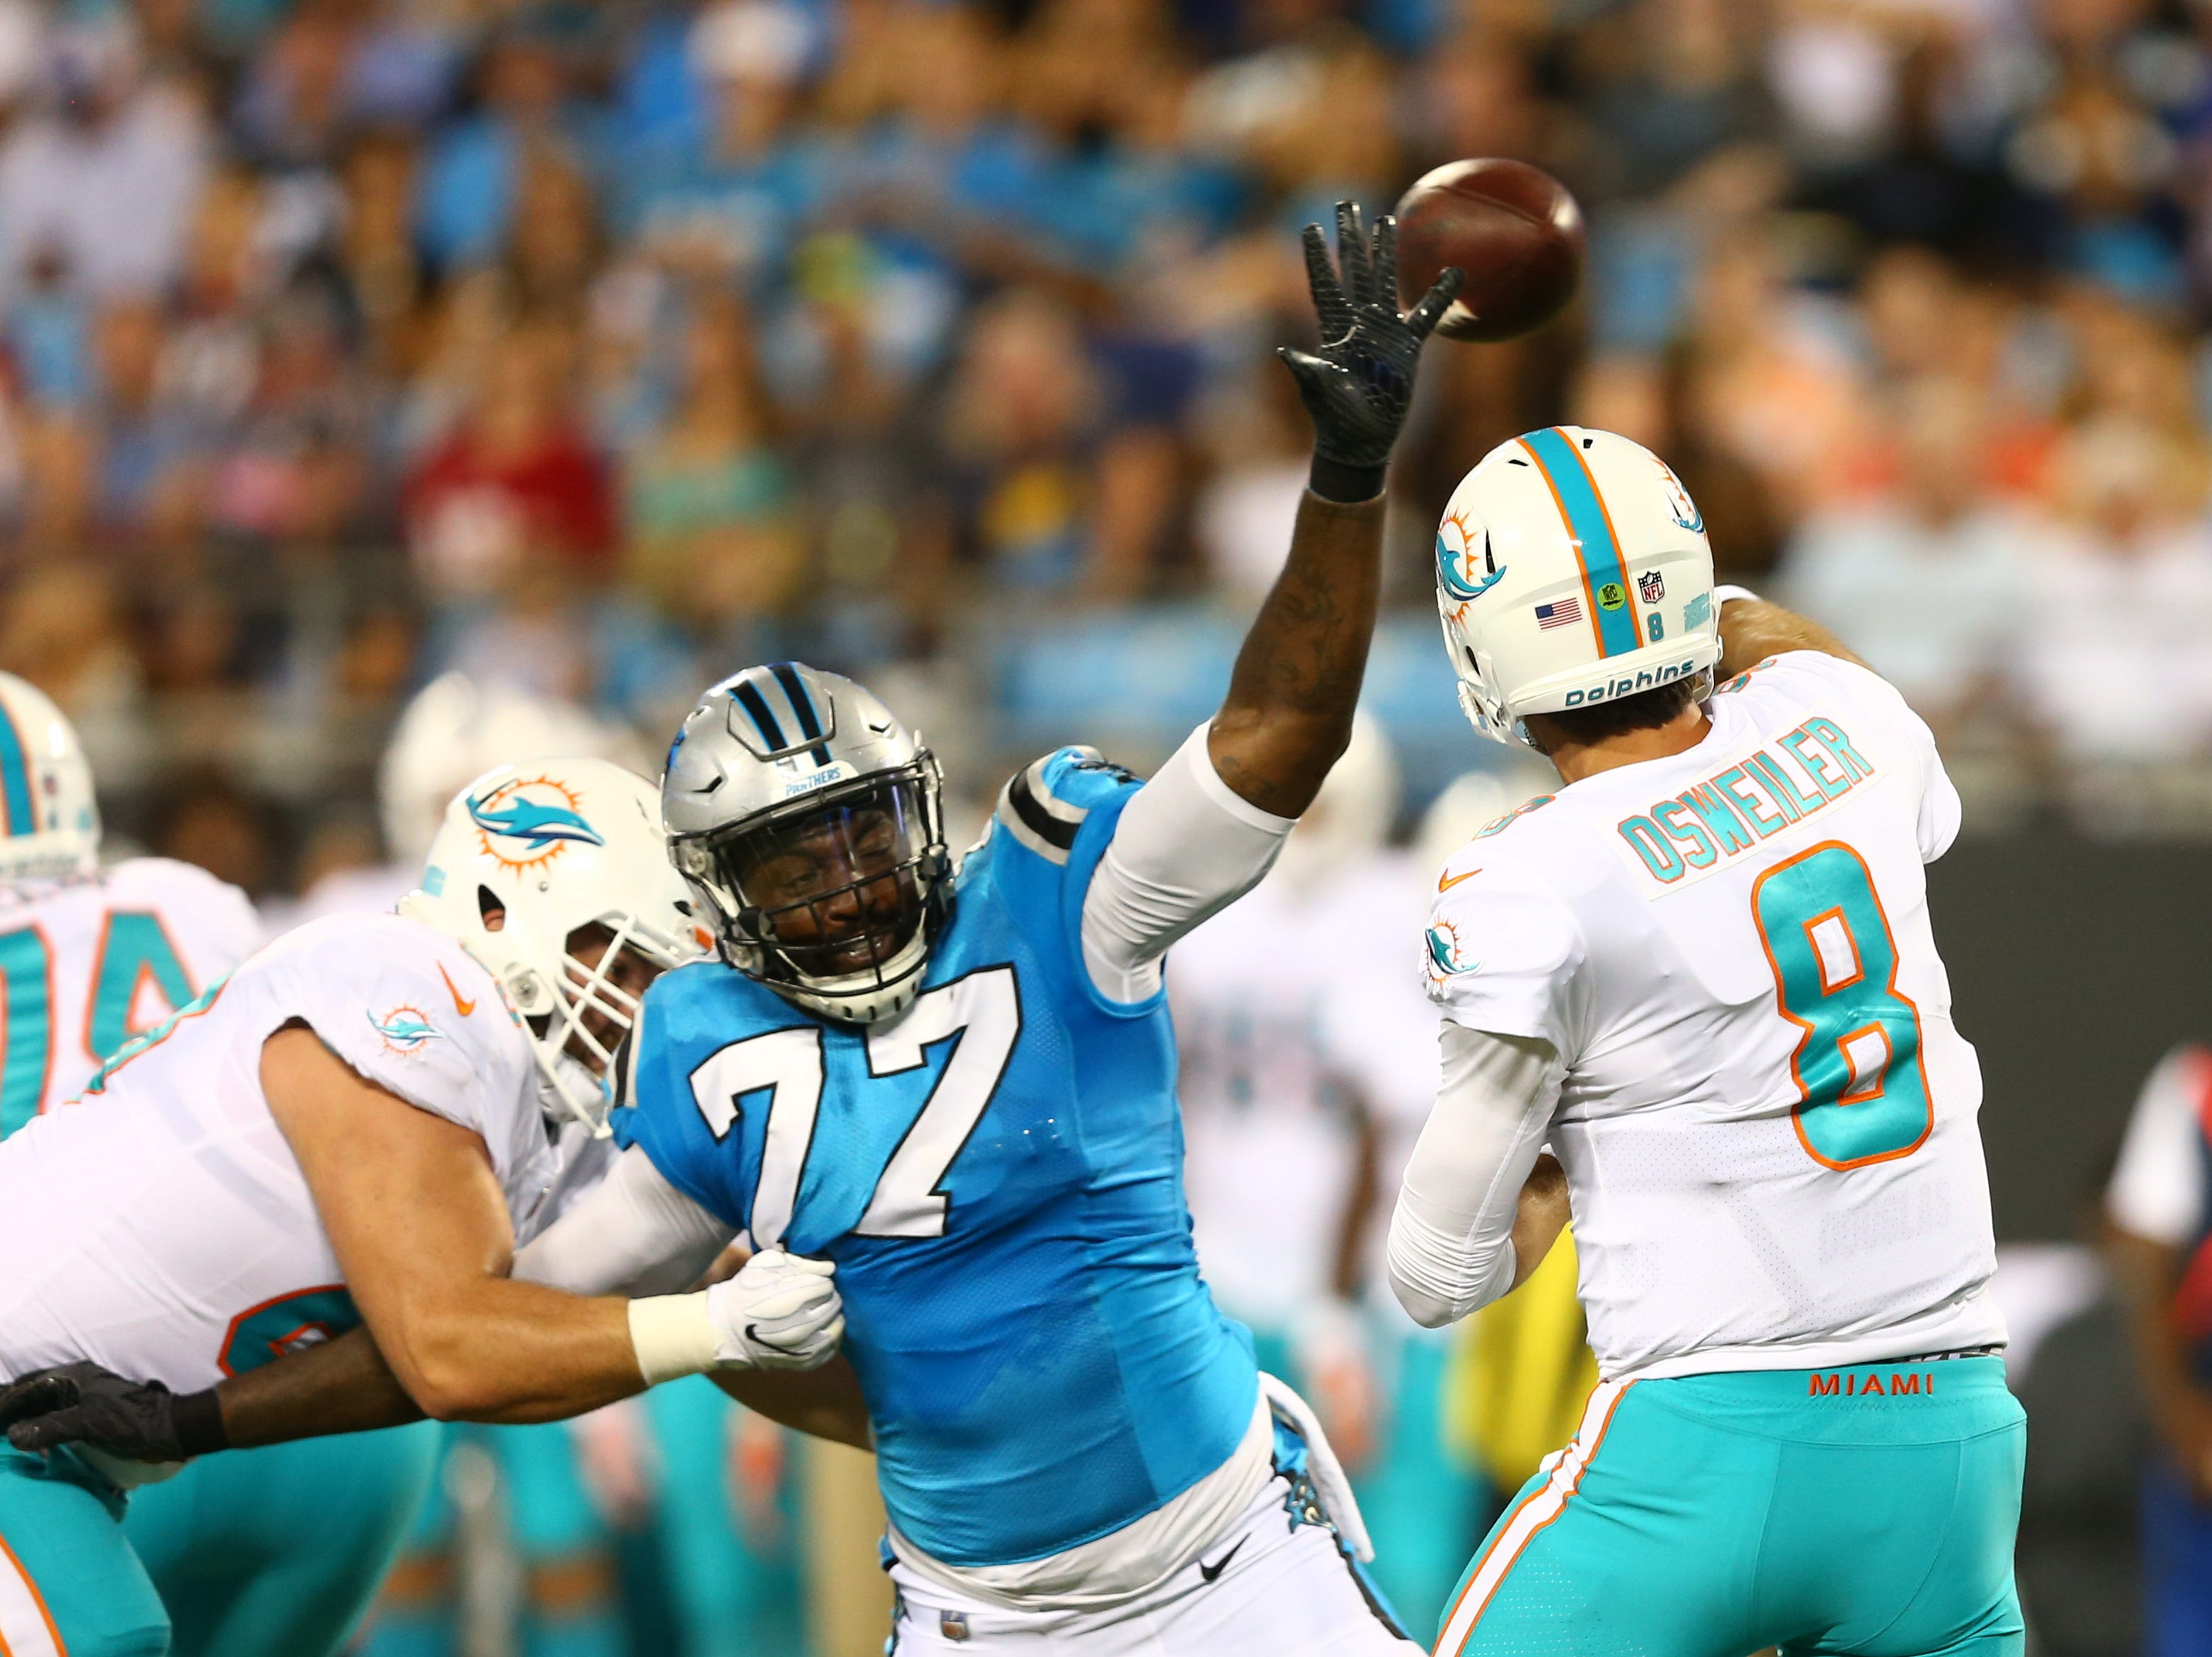 Miami Dolphins quarterback Brock Osweiler (8) passes the ball while under pressure of Carolina Panthers defensive end Zach Moore (77) in the second quarter at Bank of America Stadium.